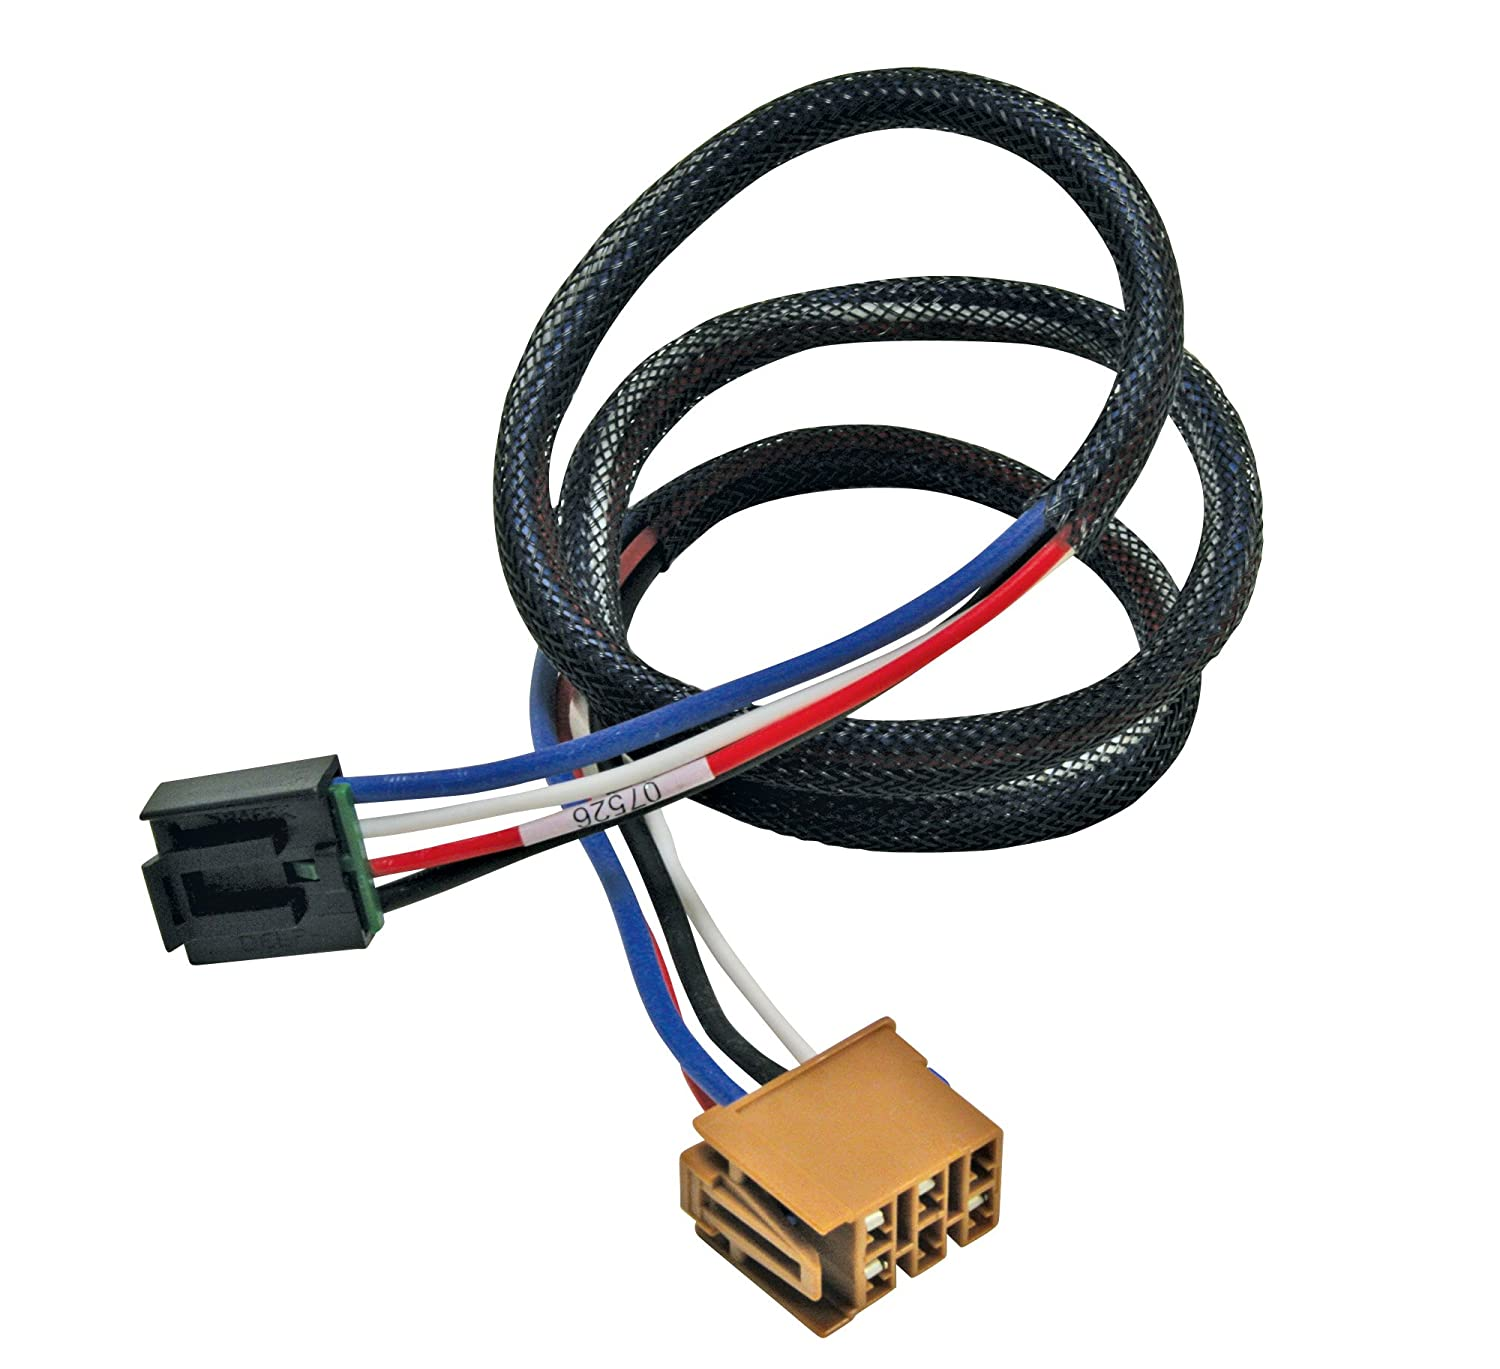 Reese Trailer Wiring Harness 28 Diagram Images Tow Readyr 20251 4flat Kit Car End Connector With Tail Sl1500 Amazon Com Towpower 7805011 Brake Control